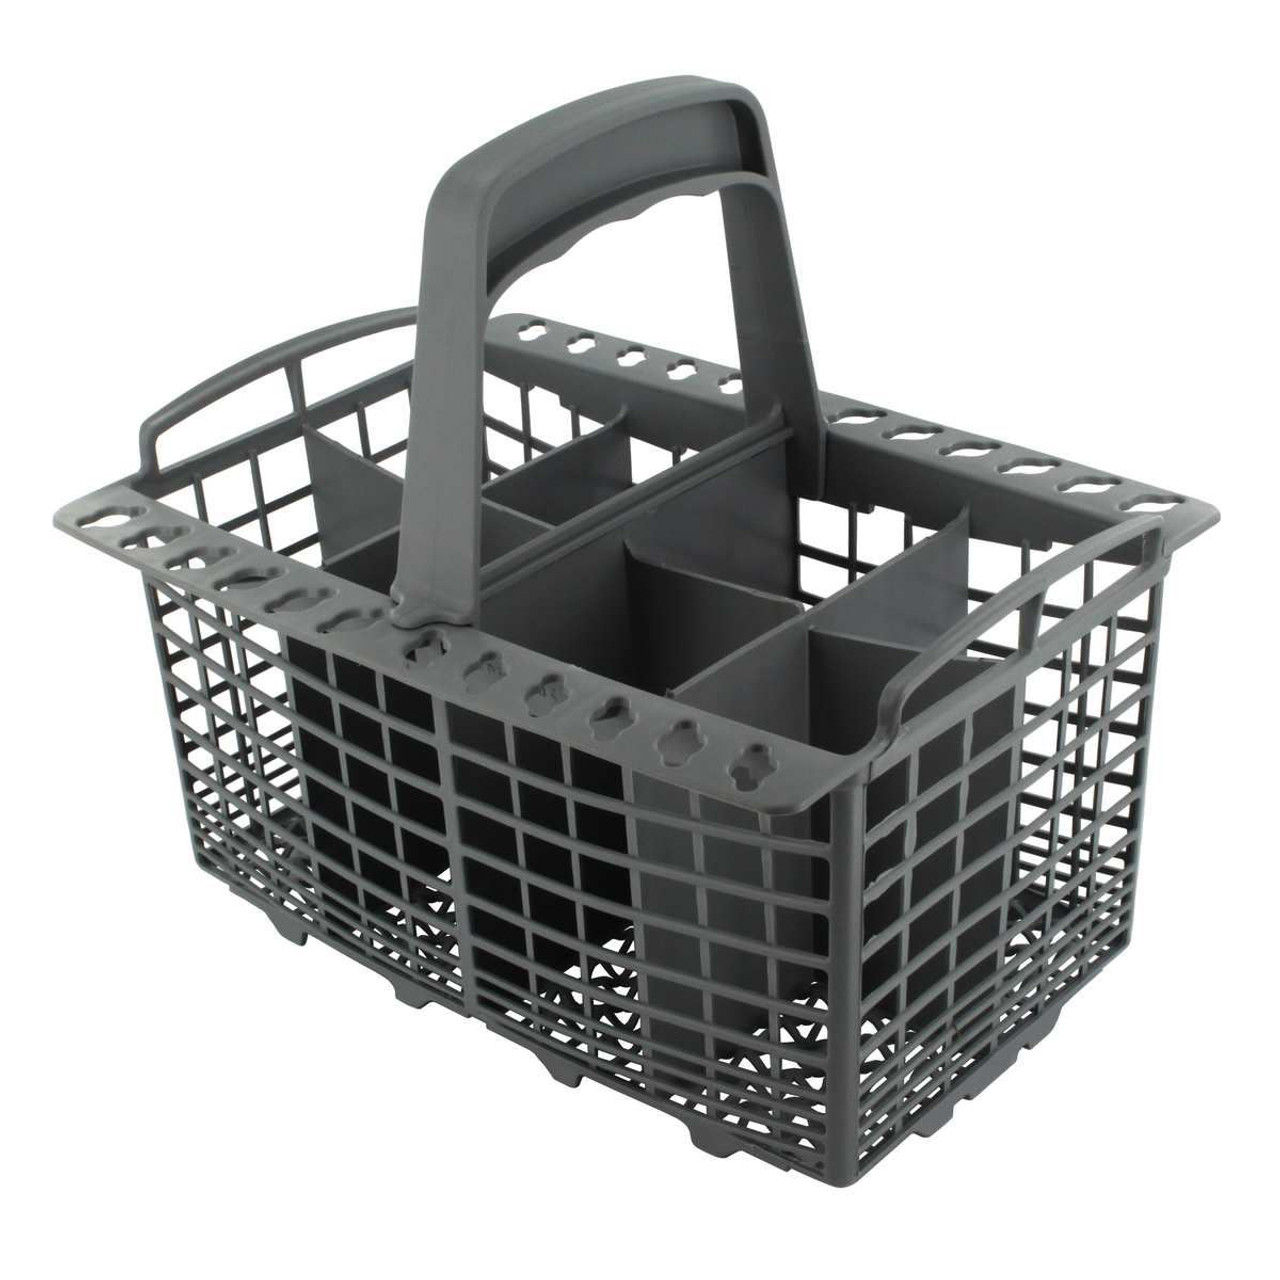 Cutlery Basket for Hotpoint 6832P 6832P 6833B Dishwasher NEW